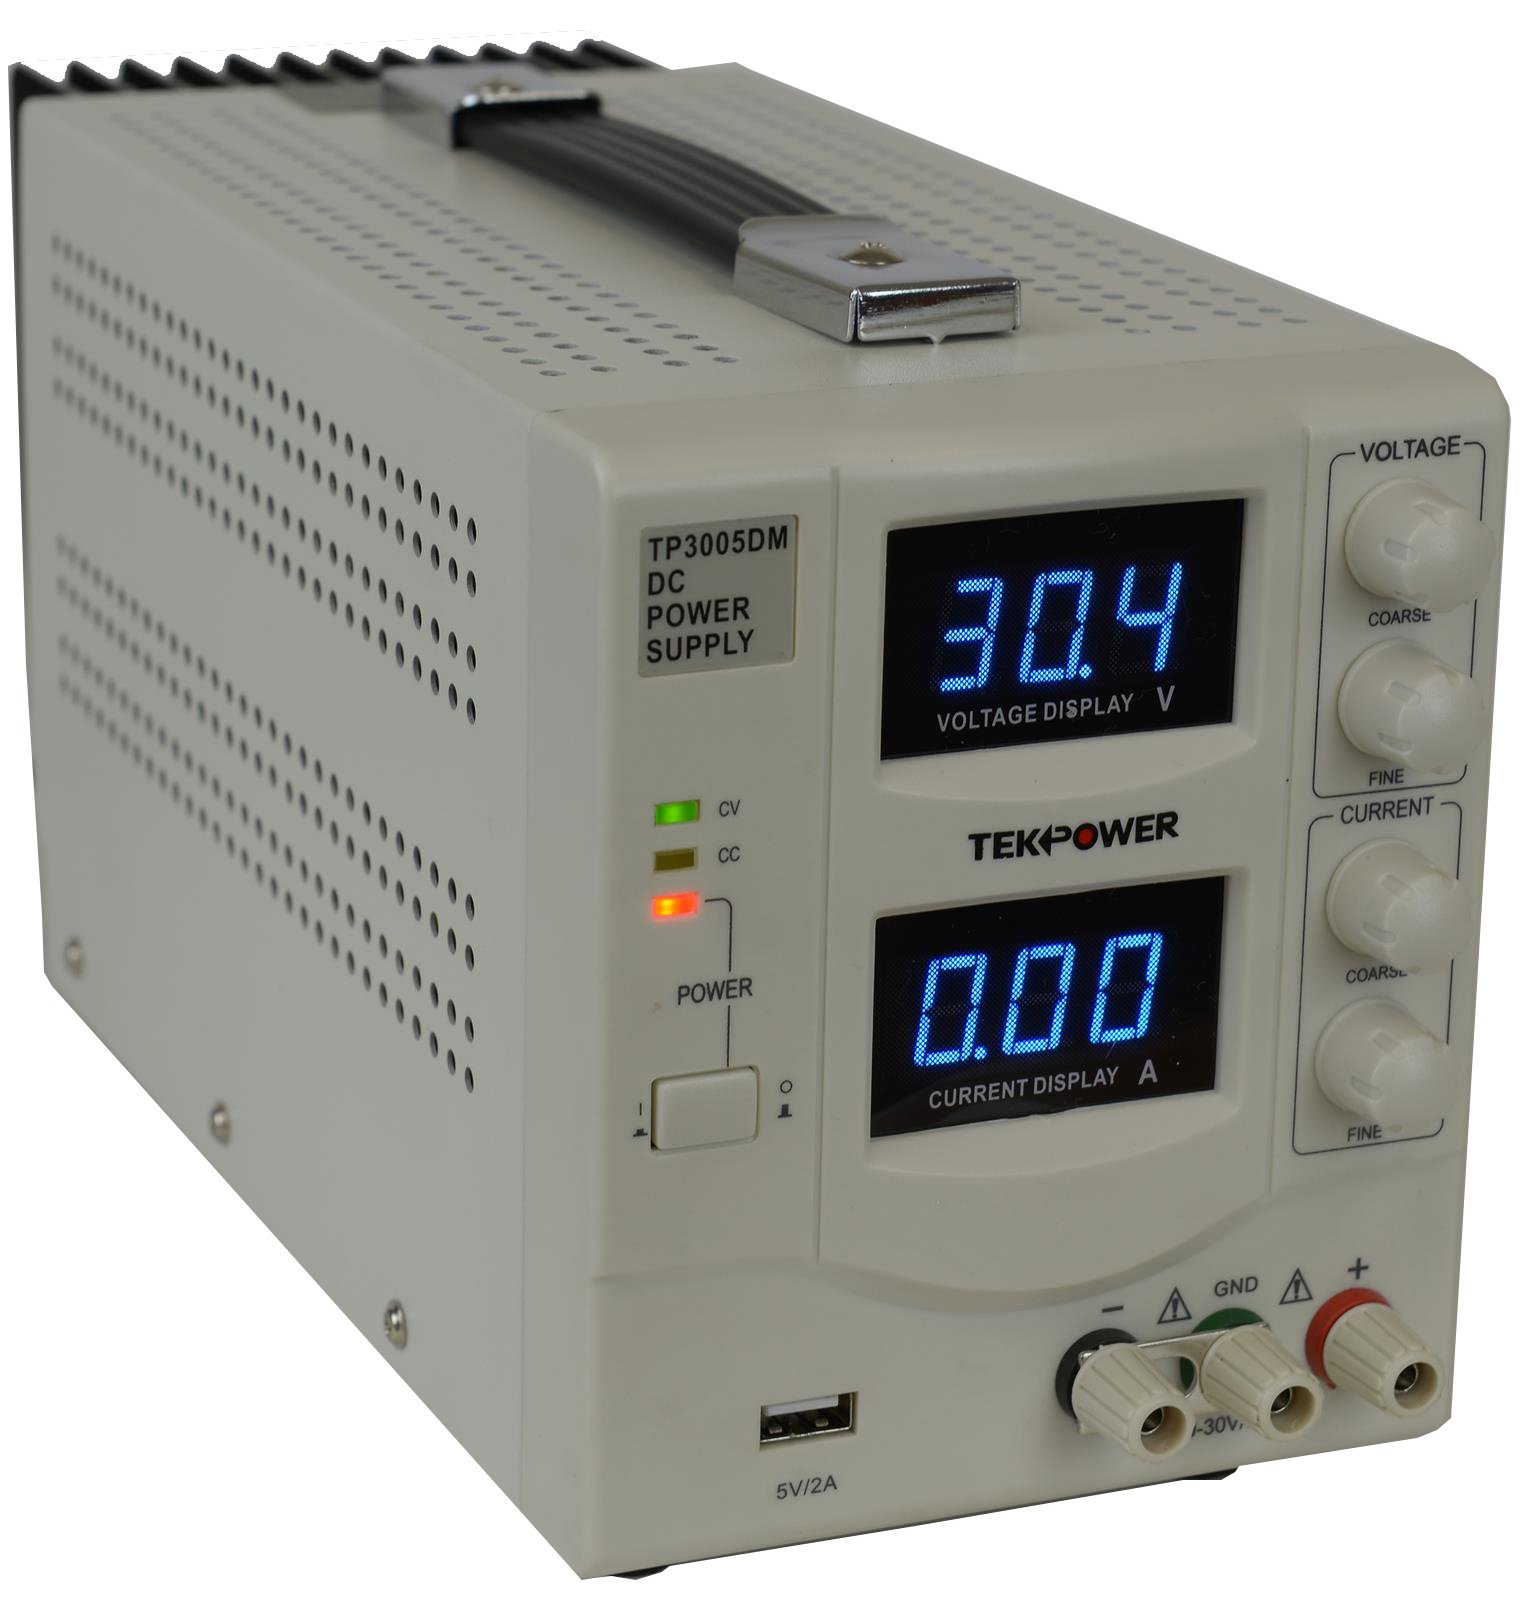 TekPower TP3005DM Linear Adjustable Digital DC Power Supply 30V 5A with a 5V/2A USB Port,Lab Grade, Super Clean and Quiet by Tekpower (Image #2)